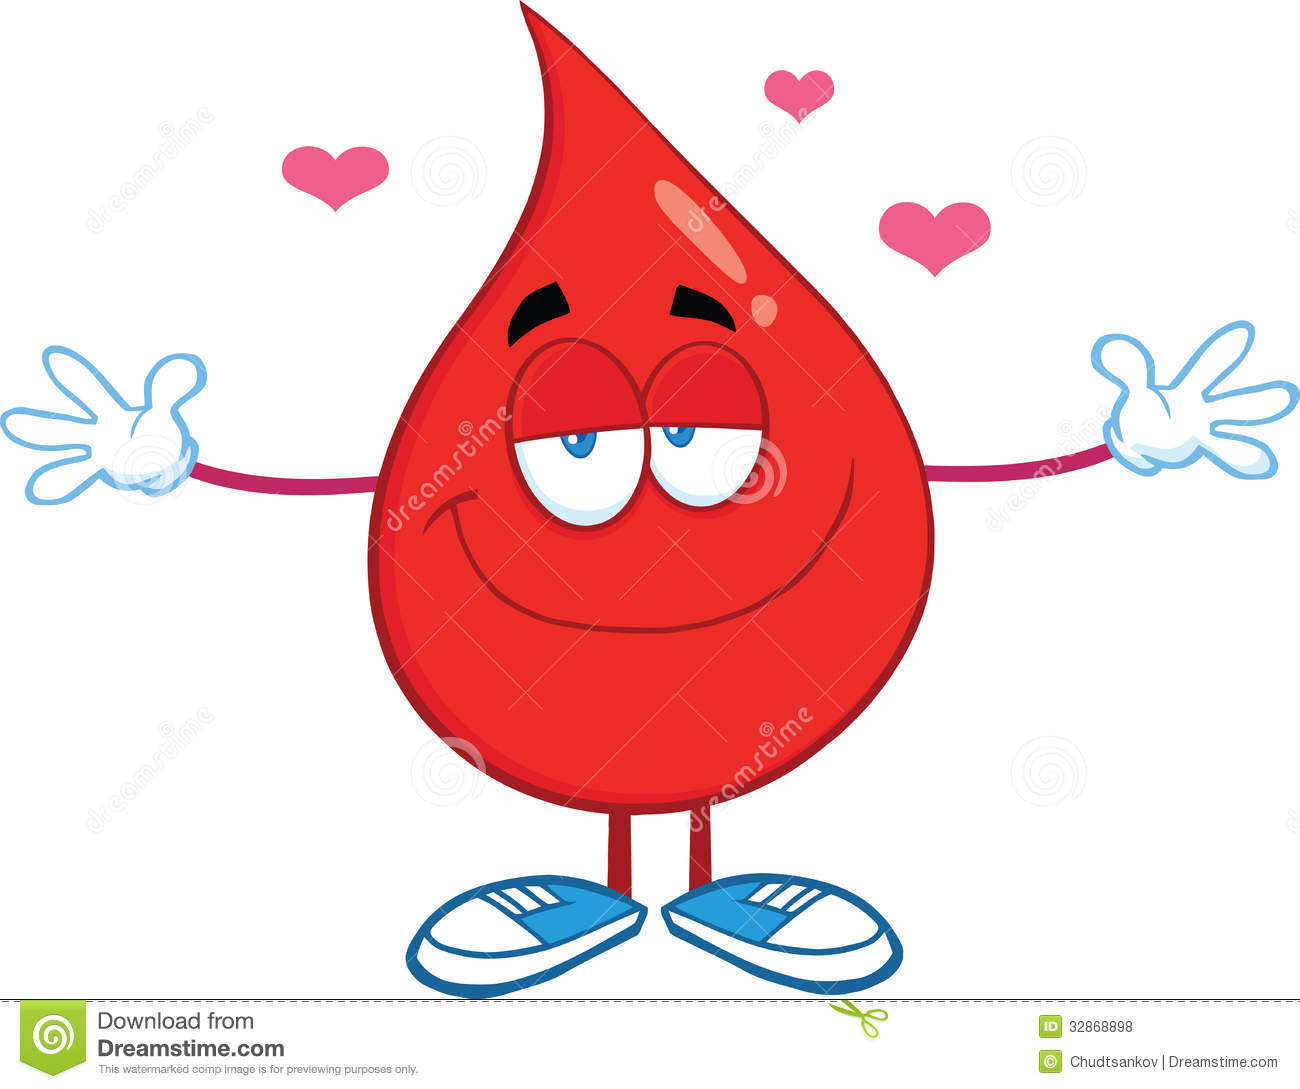 Blood clipart cute Arms blood collection hd 99KB